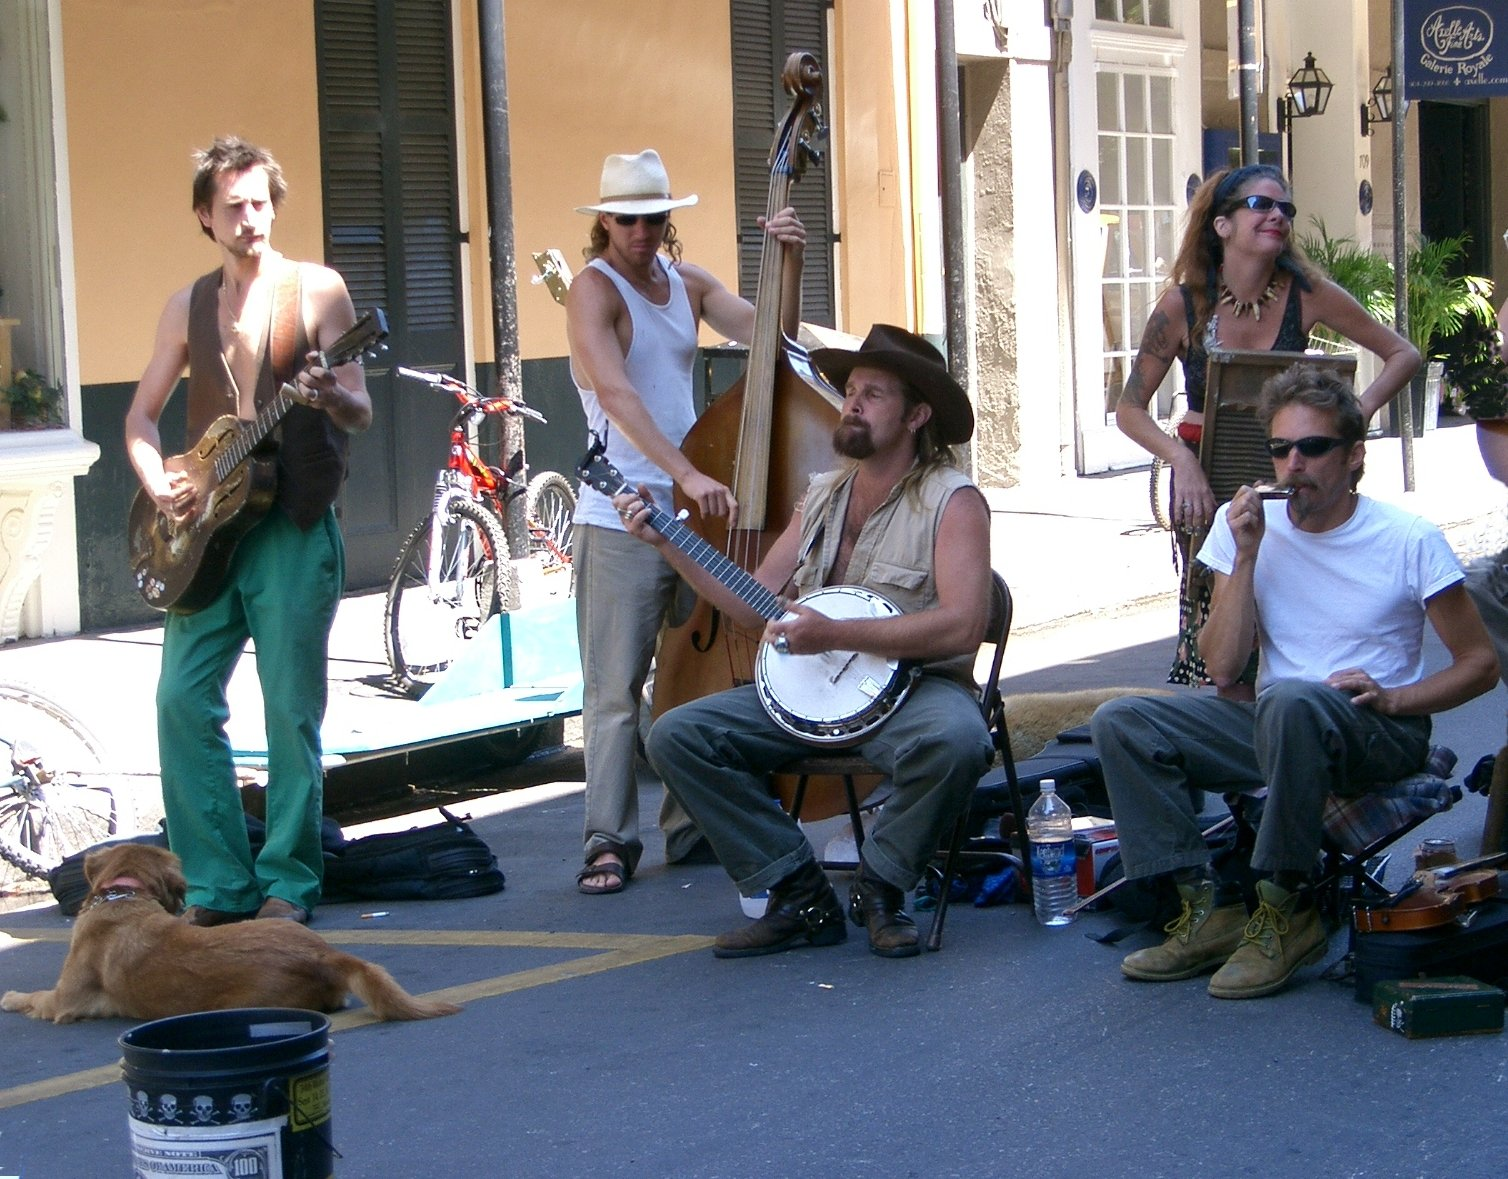 Musicians play on the streets of the New Orleans French Quarter, a quotidian, ubiquitous sight.